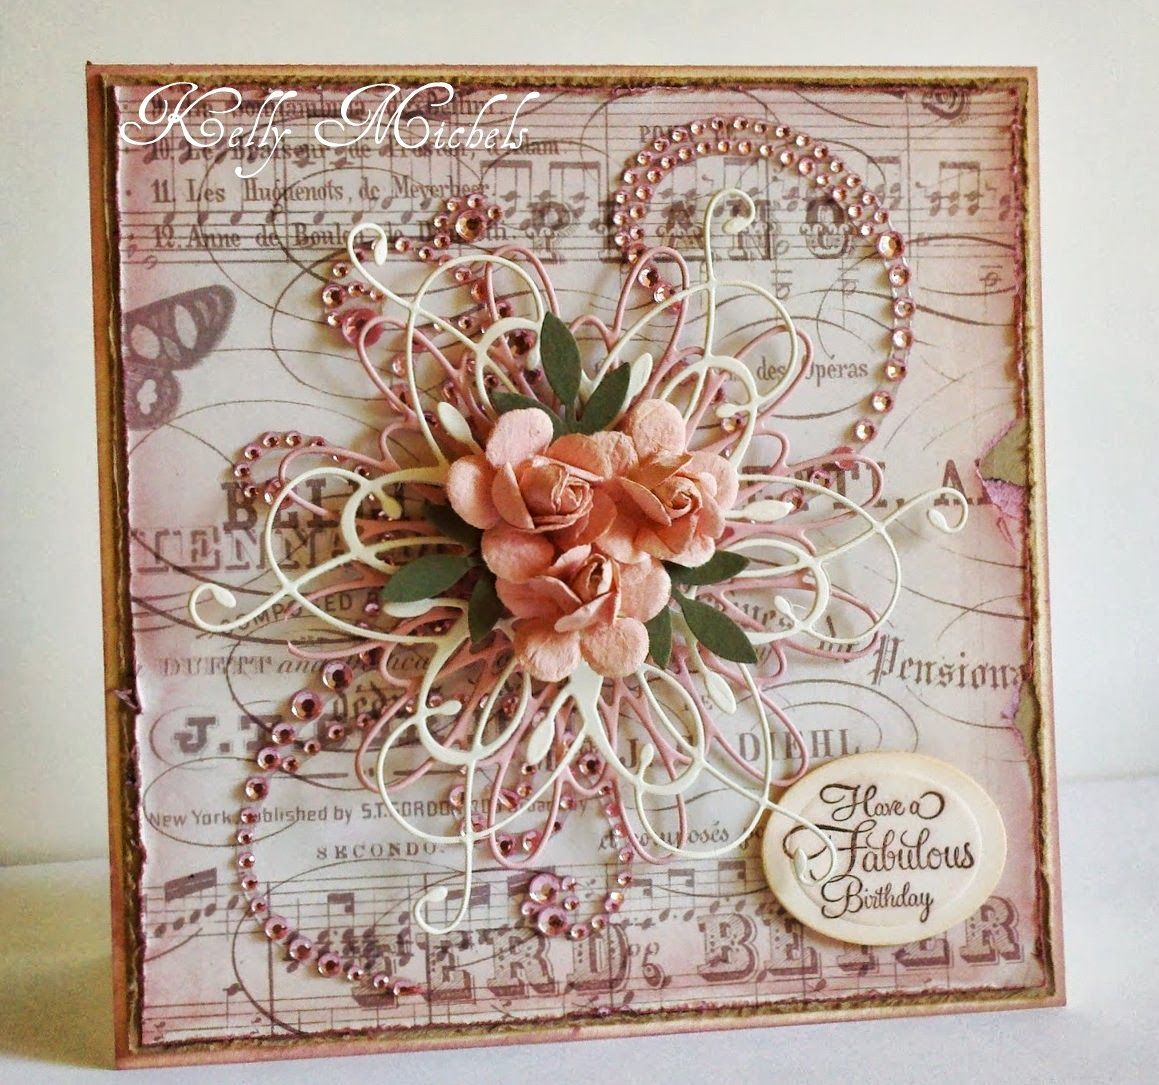 A Hand Craft Victorian Birthday Card For A Very Special Lady Turning 100 Flower Cards Hand Made Greeting Cards Card Art